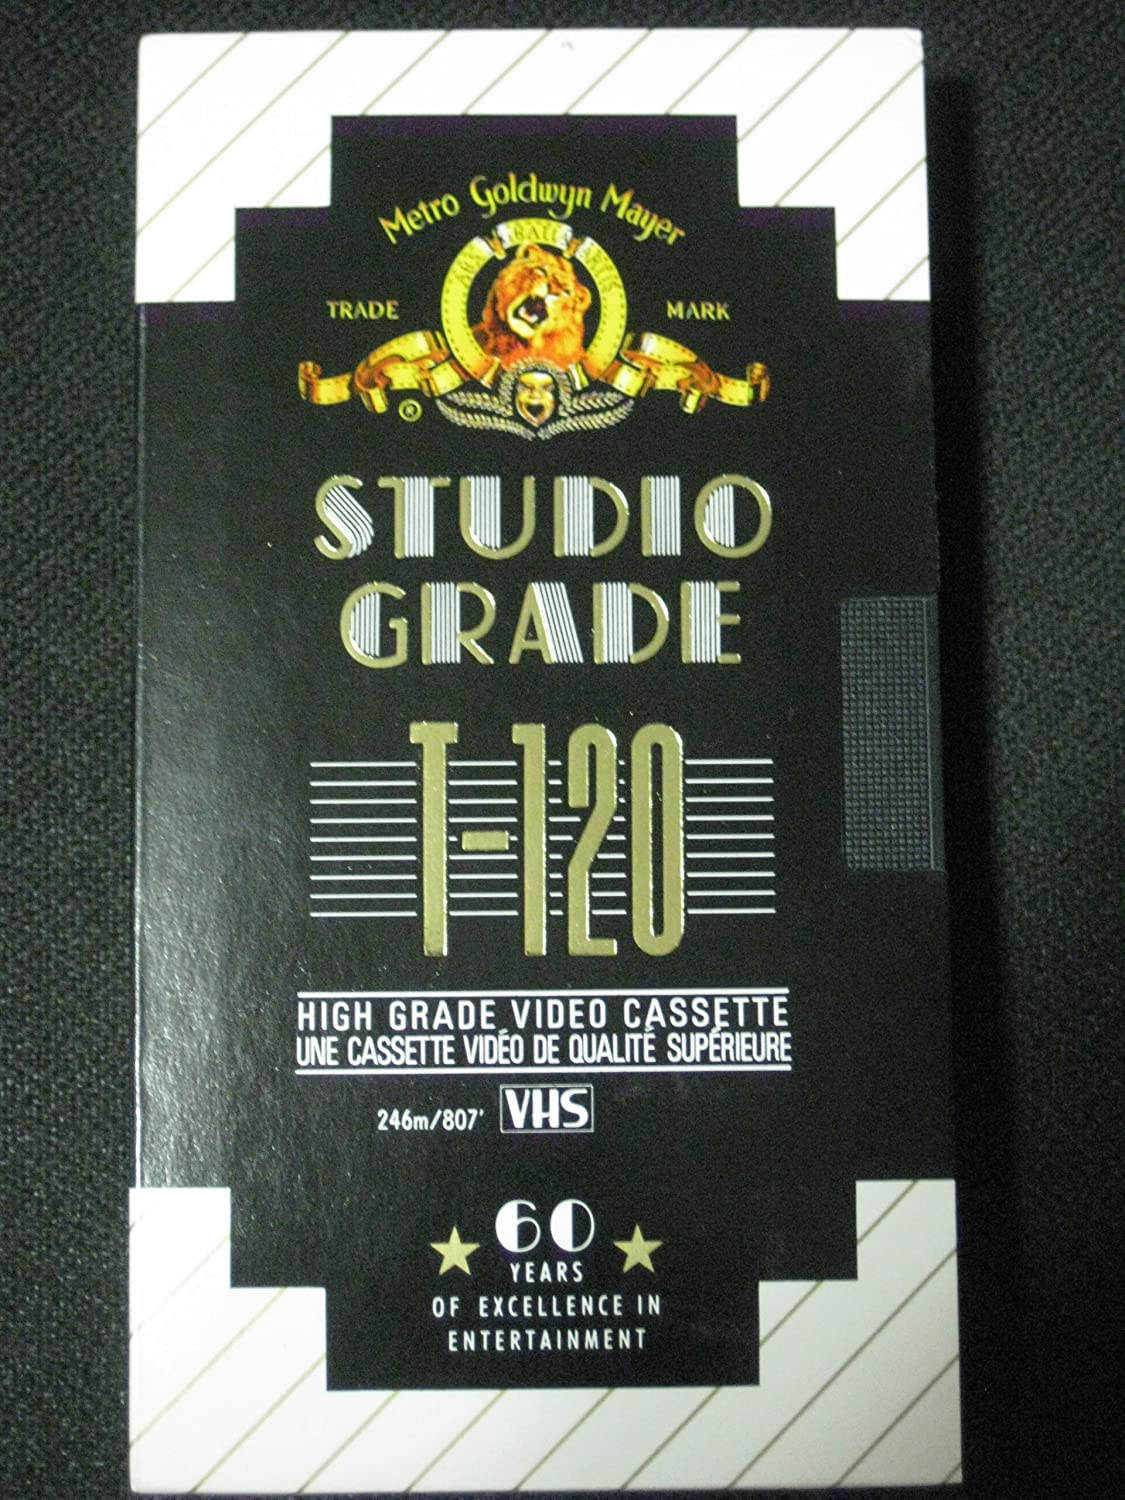 Amazon.com: Set of Five High Grade Video Cassettes (VHS) MGM Studio Grade T-120: Home Audio & Theater